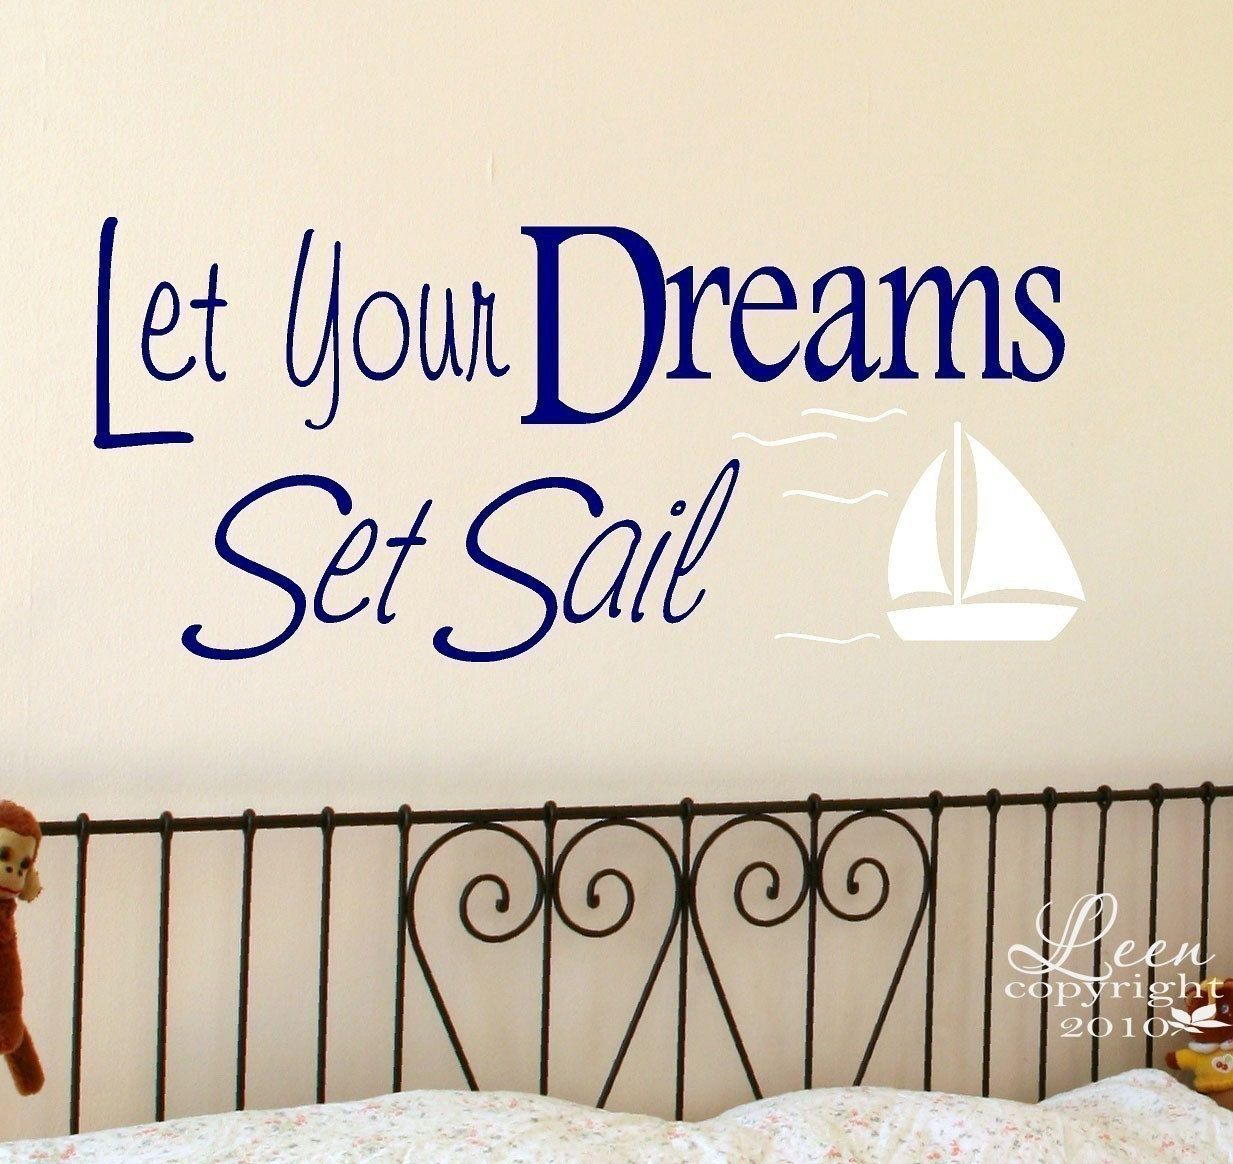 I want this Wall decal for his walls!